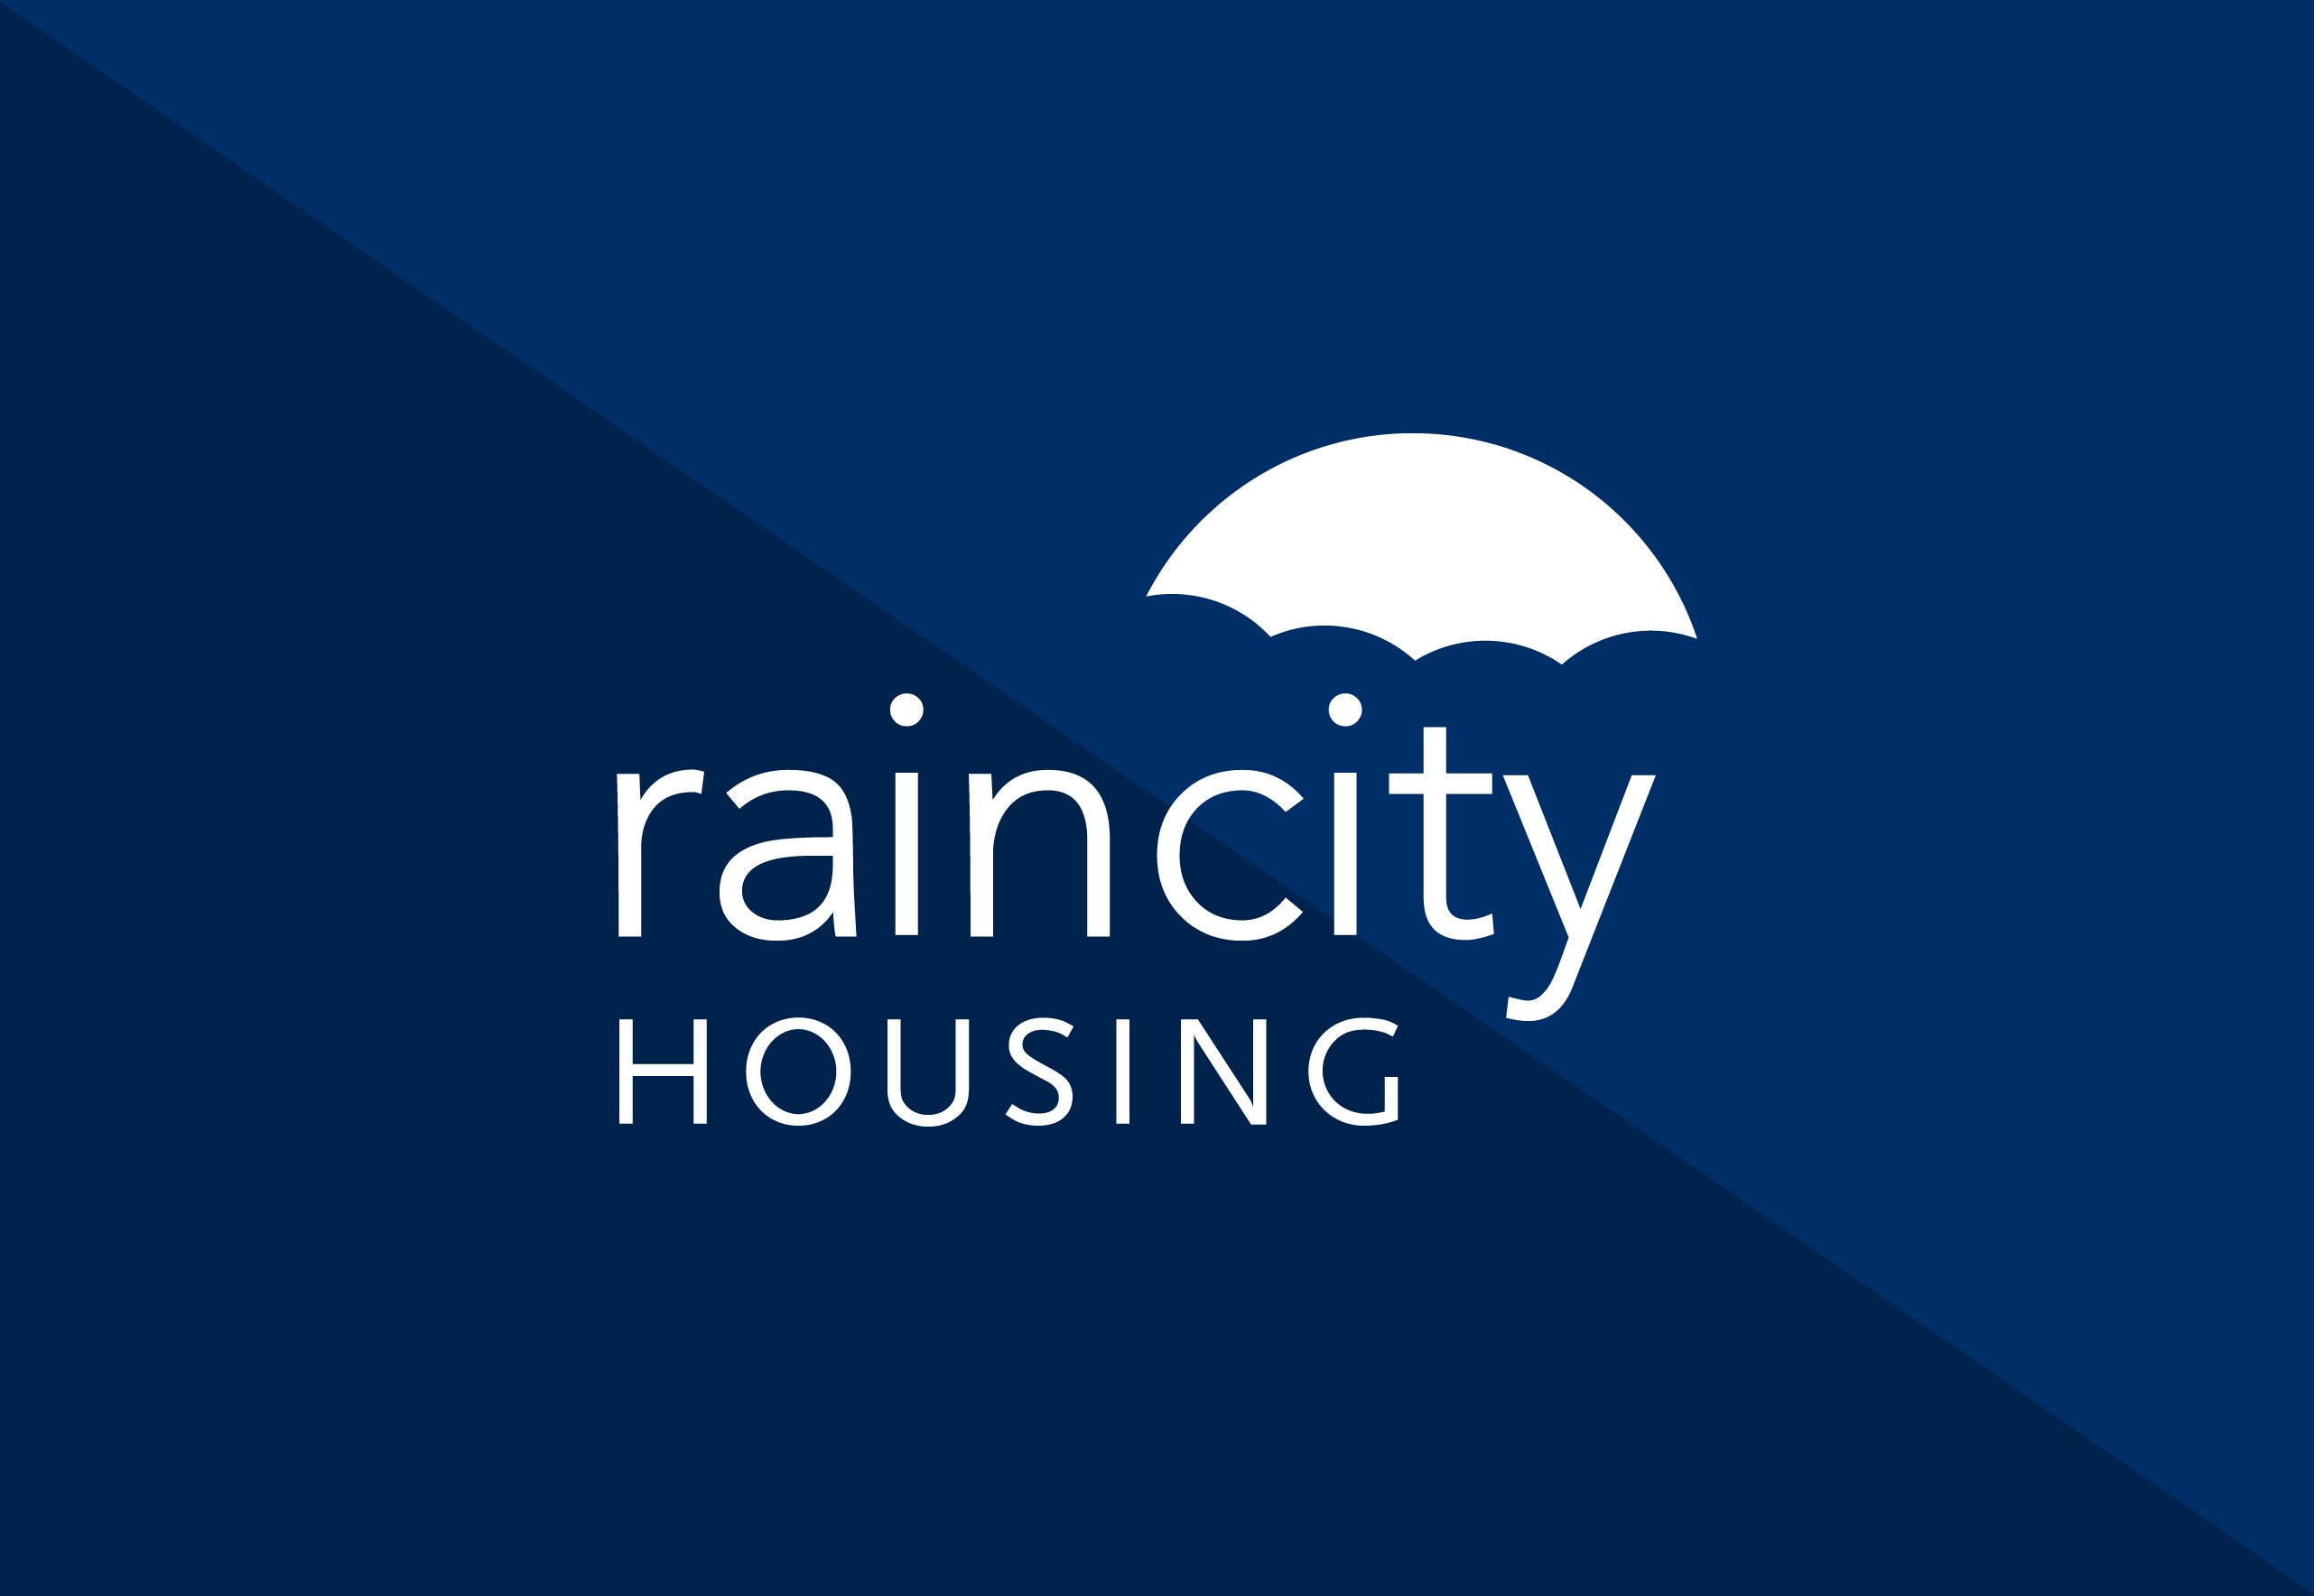 Flipside has donated its creative services to Vancouver's RainCity Housing since 2010.